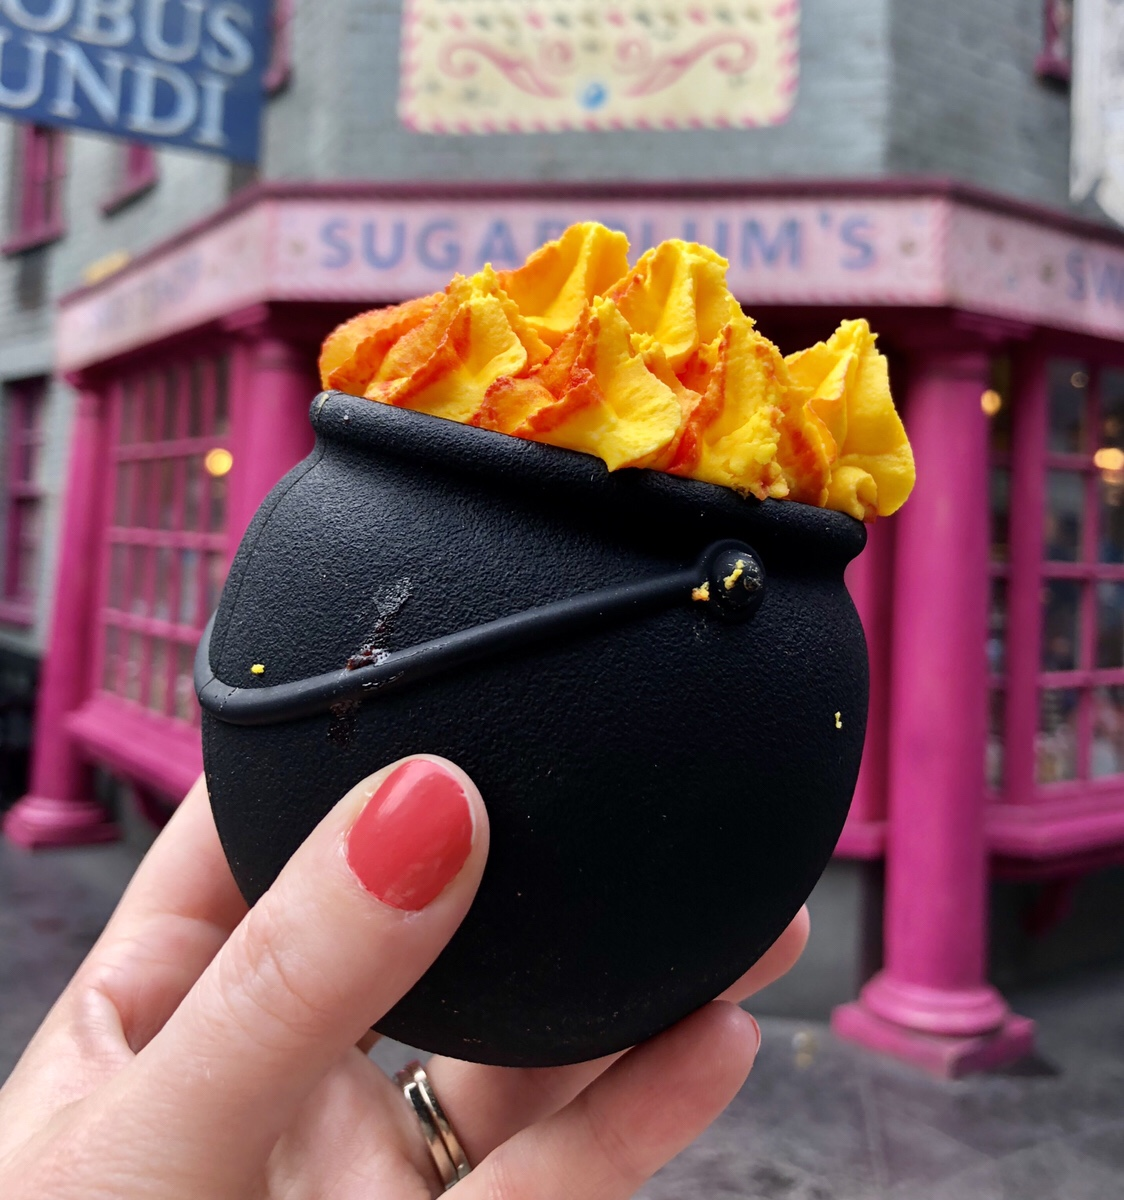 Chocolate Cauldron | Sugarplum's Sweet Shop #harrypotter #chocolatecauldron #sugarplums #universalorlando #wizardingworldofharrypotter